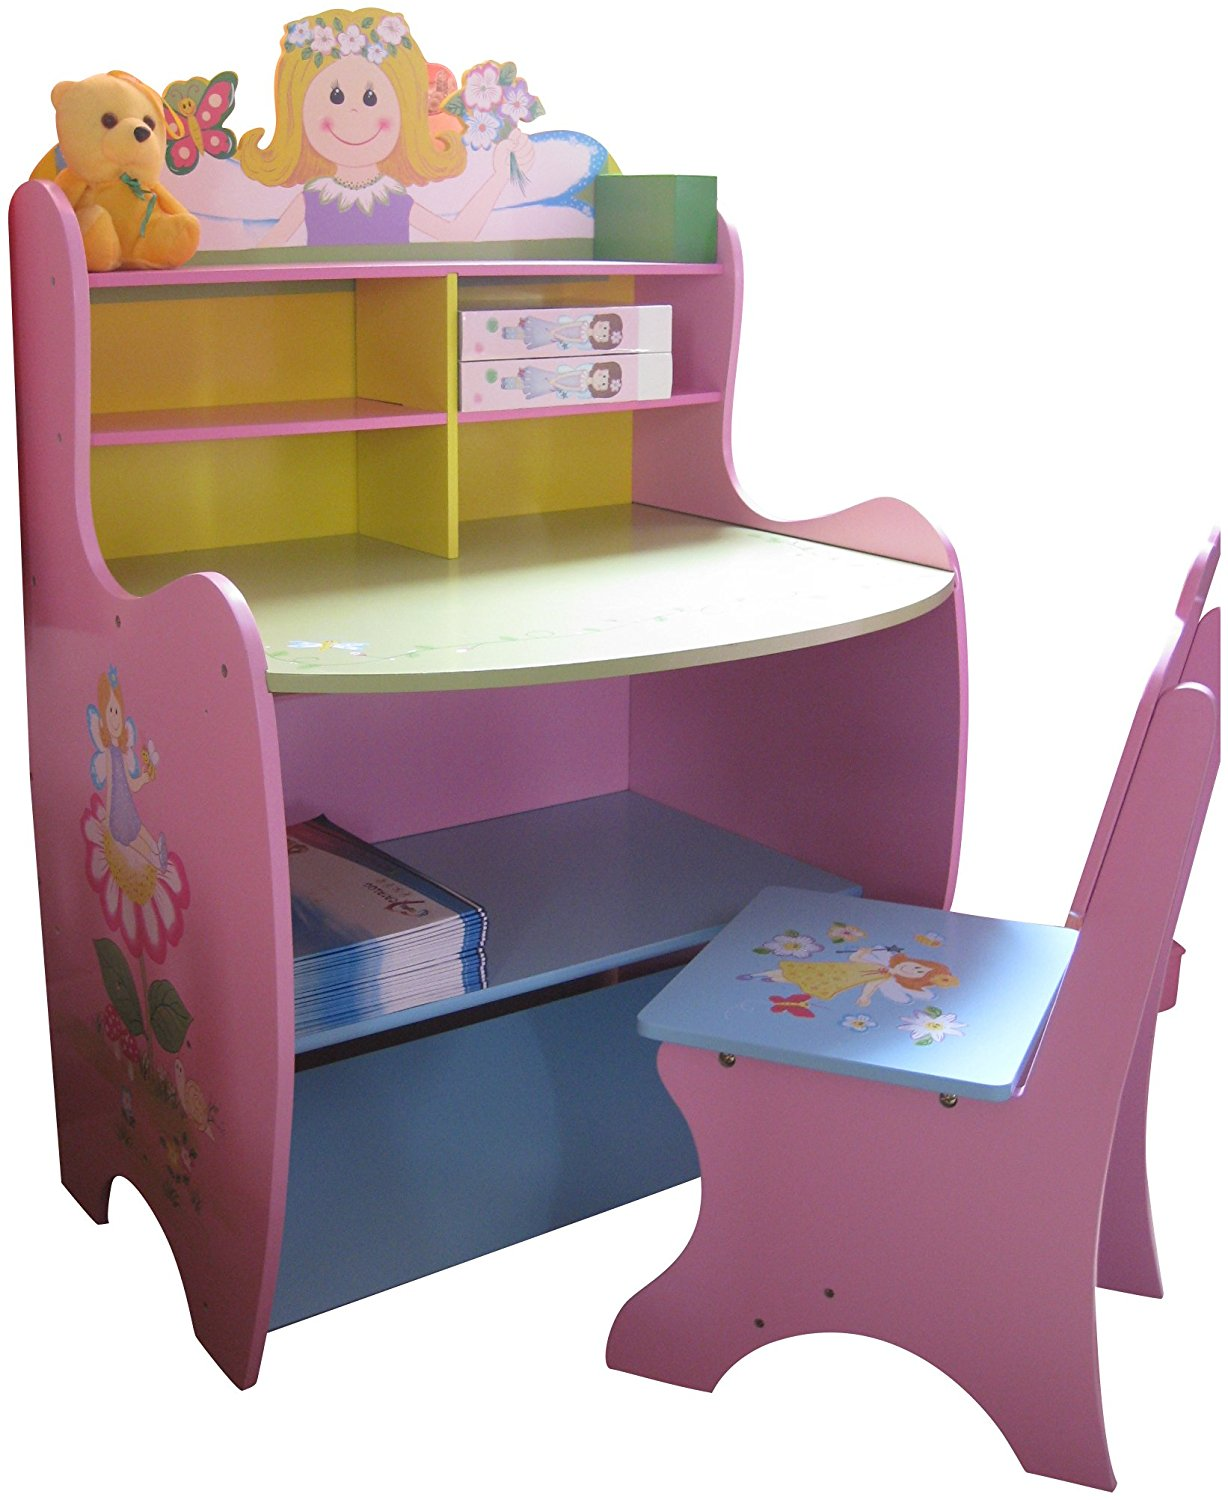 Childrens Desk Chair Childrens Desk Chair Wooden Writing Storage Fairy Bedroom